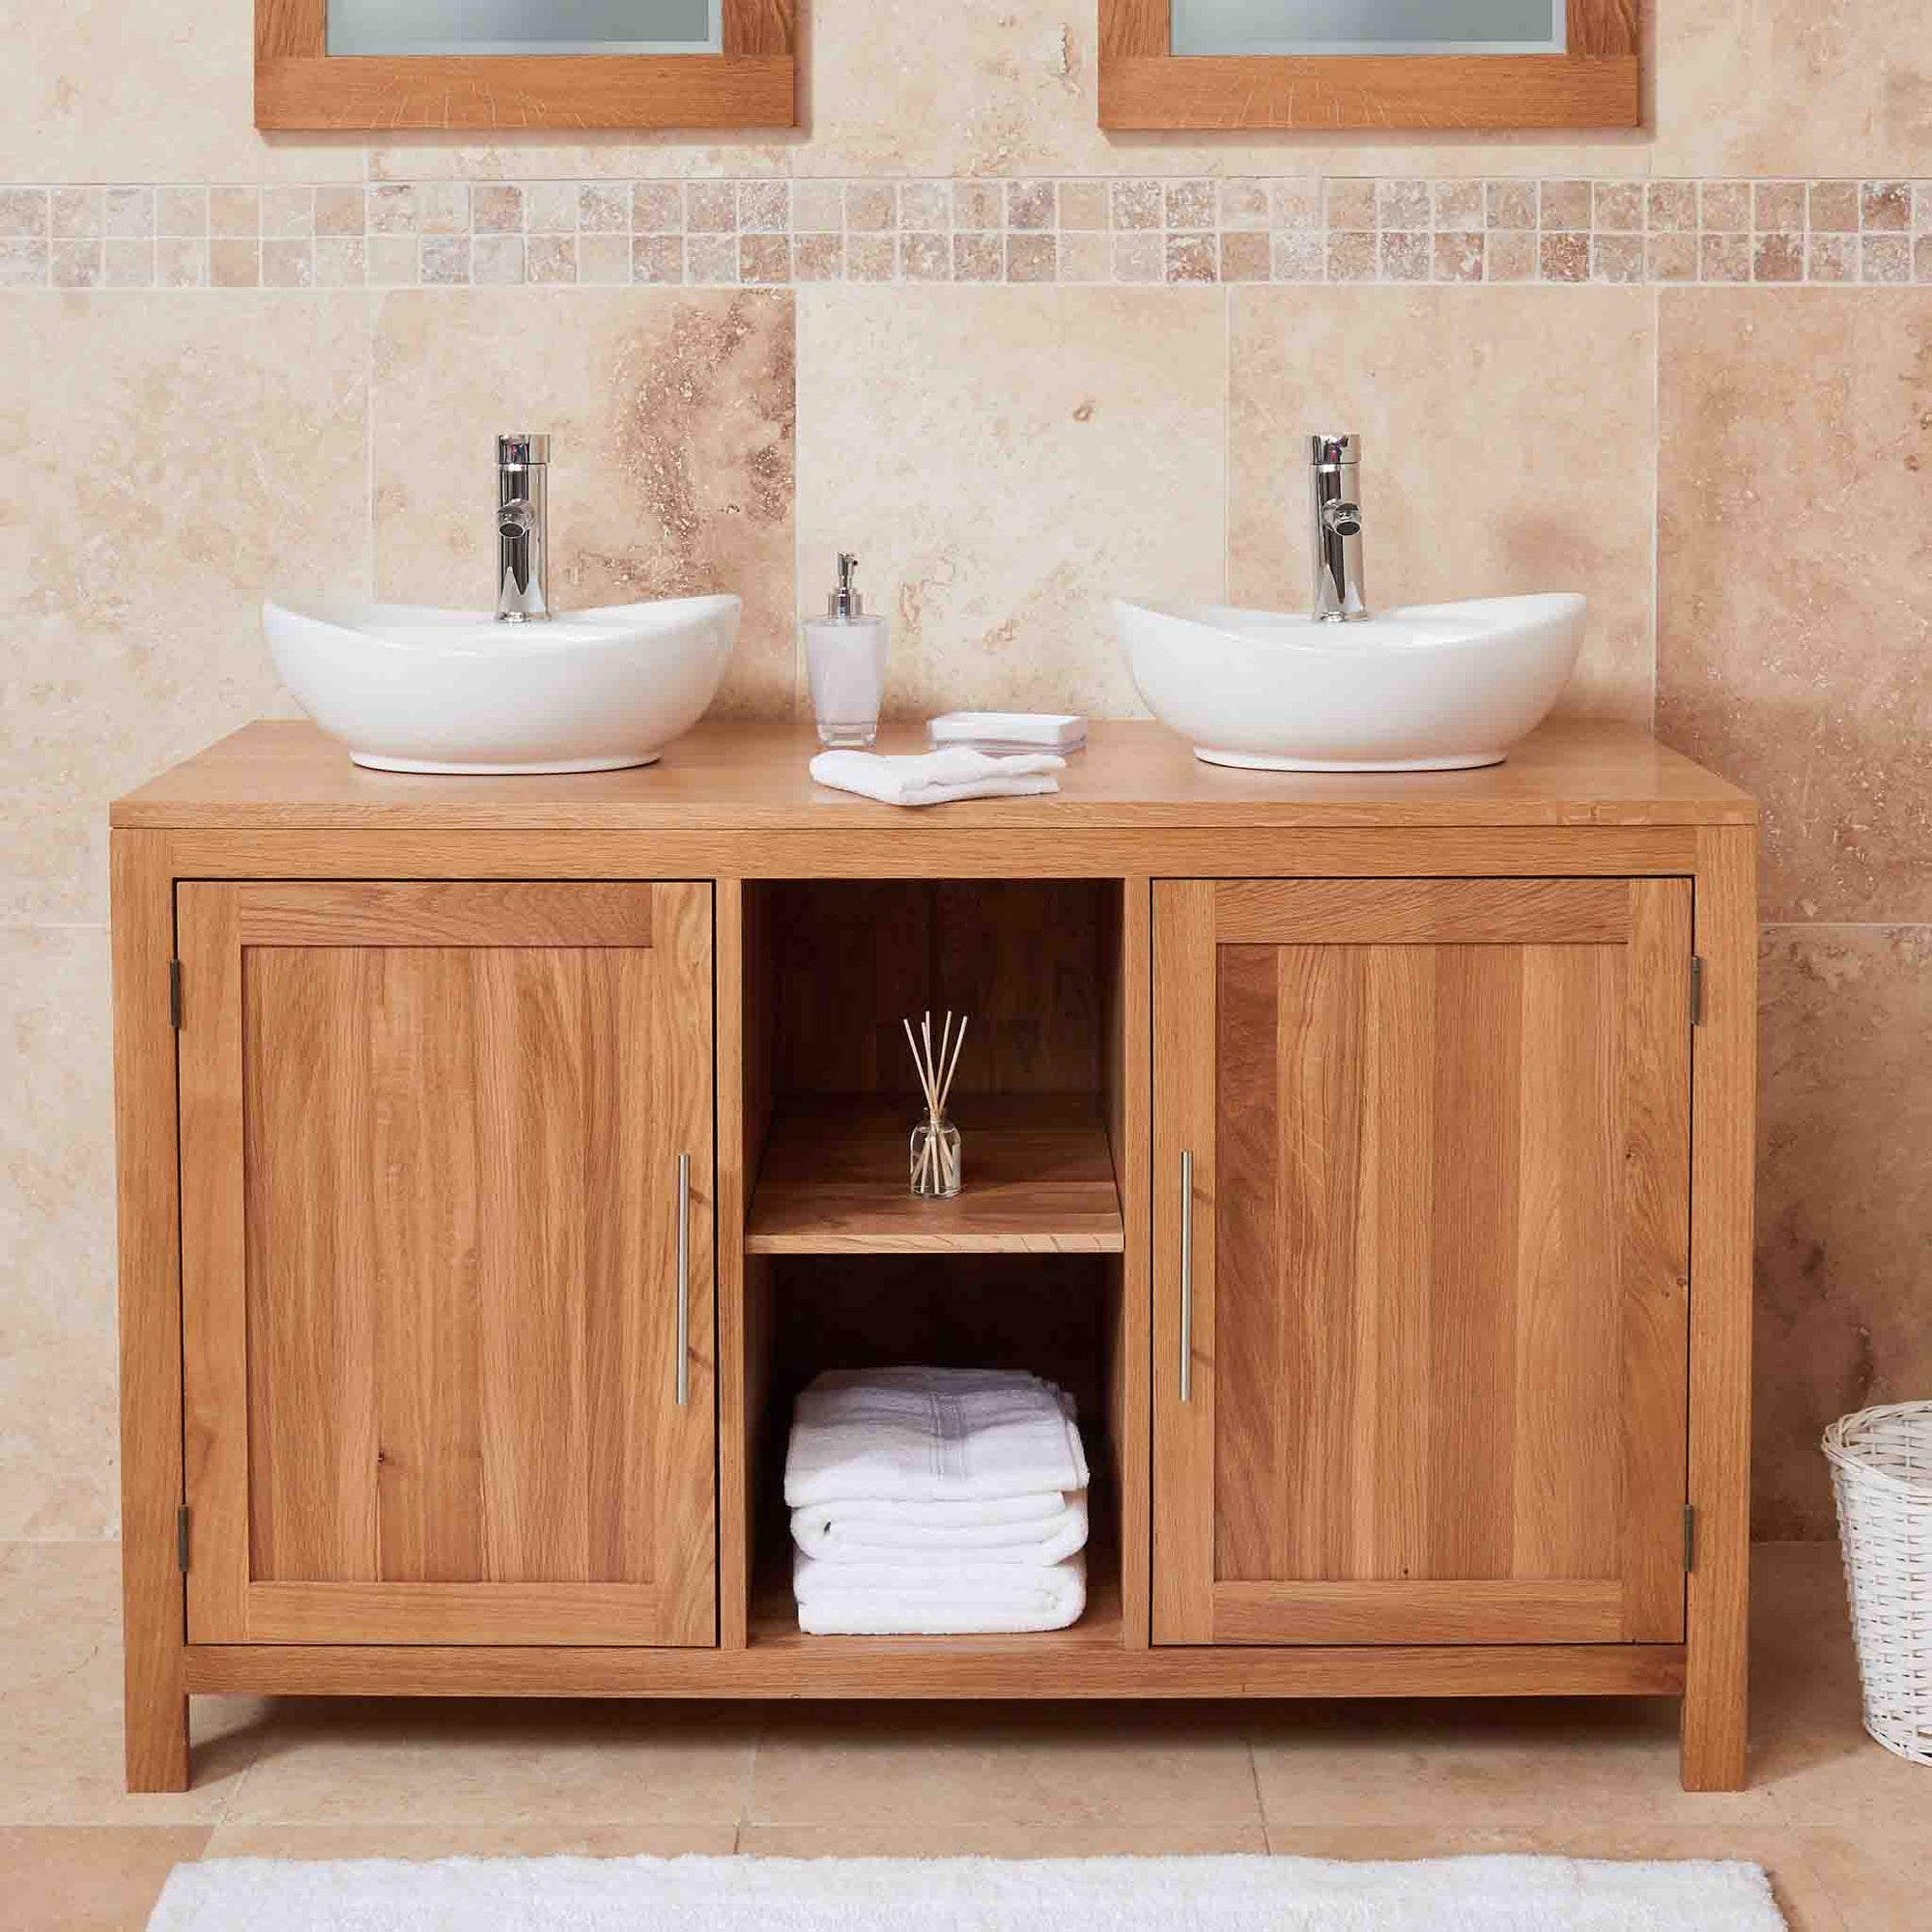 Mobel Oak Bathroom Dual Round Sink unit on white backgroud